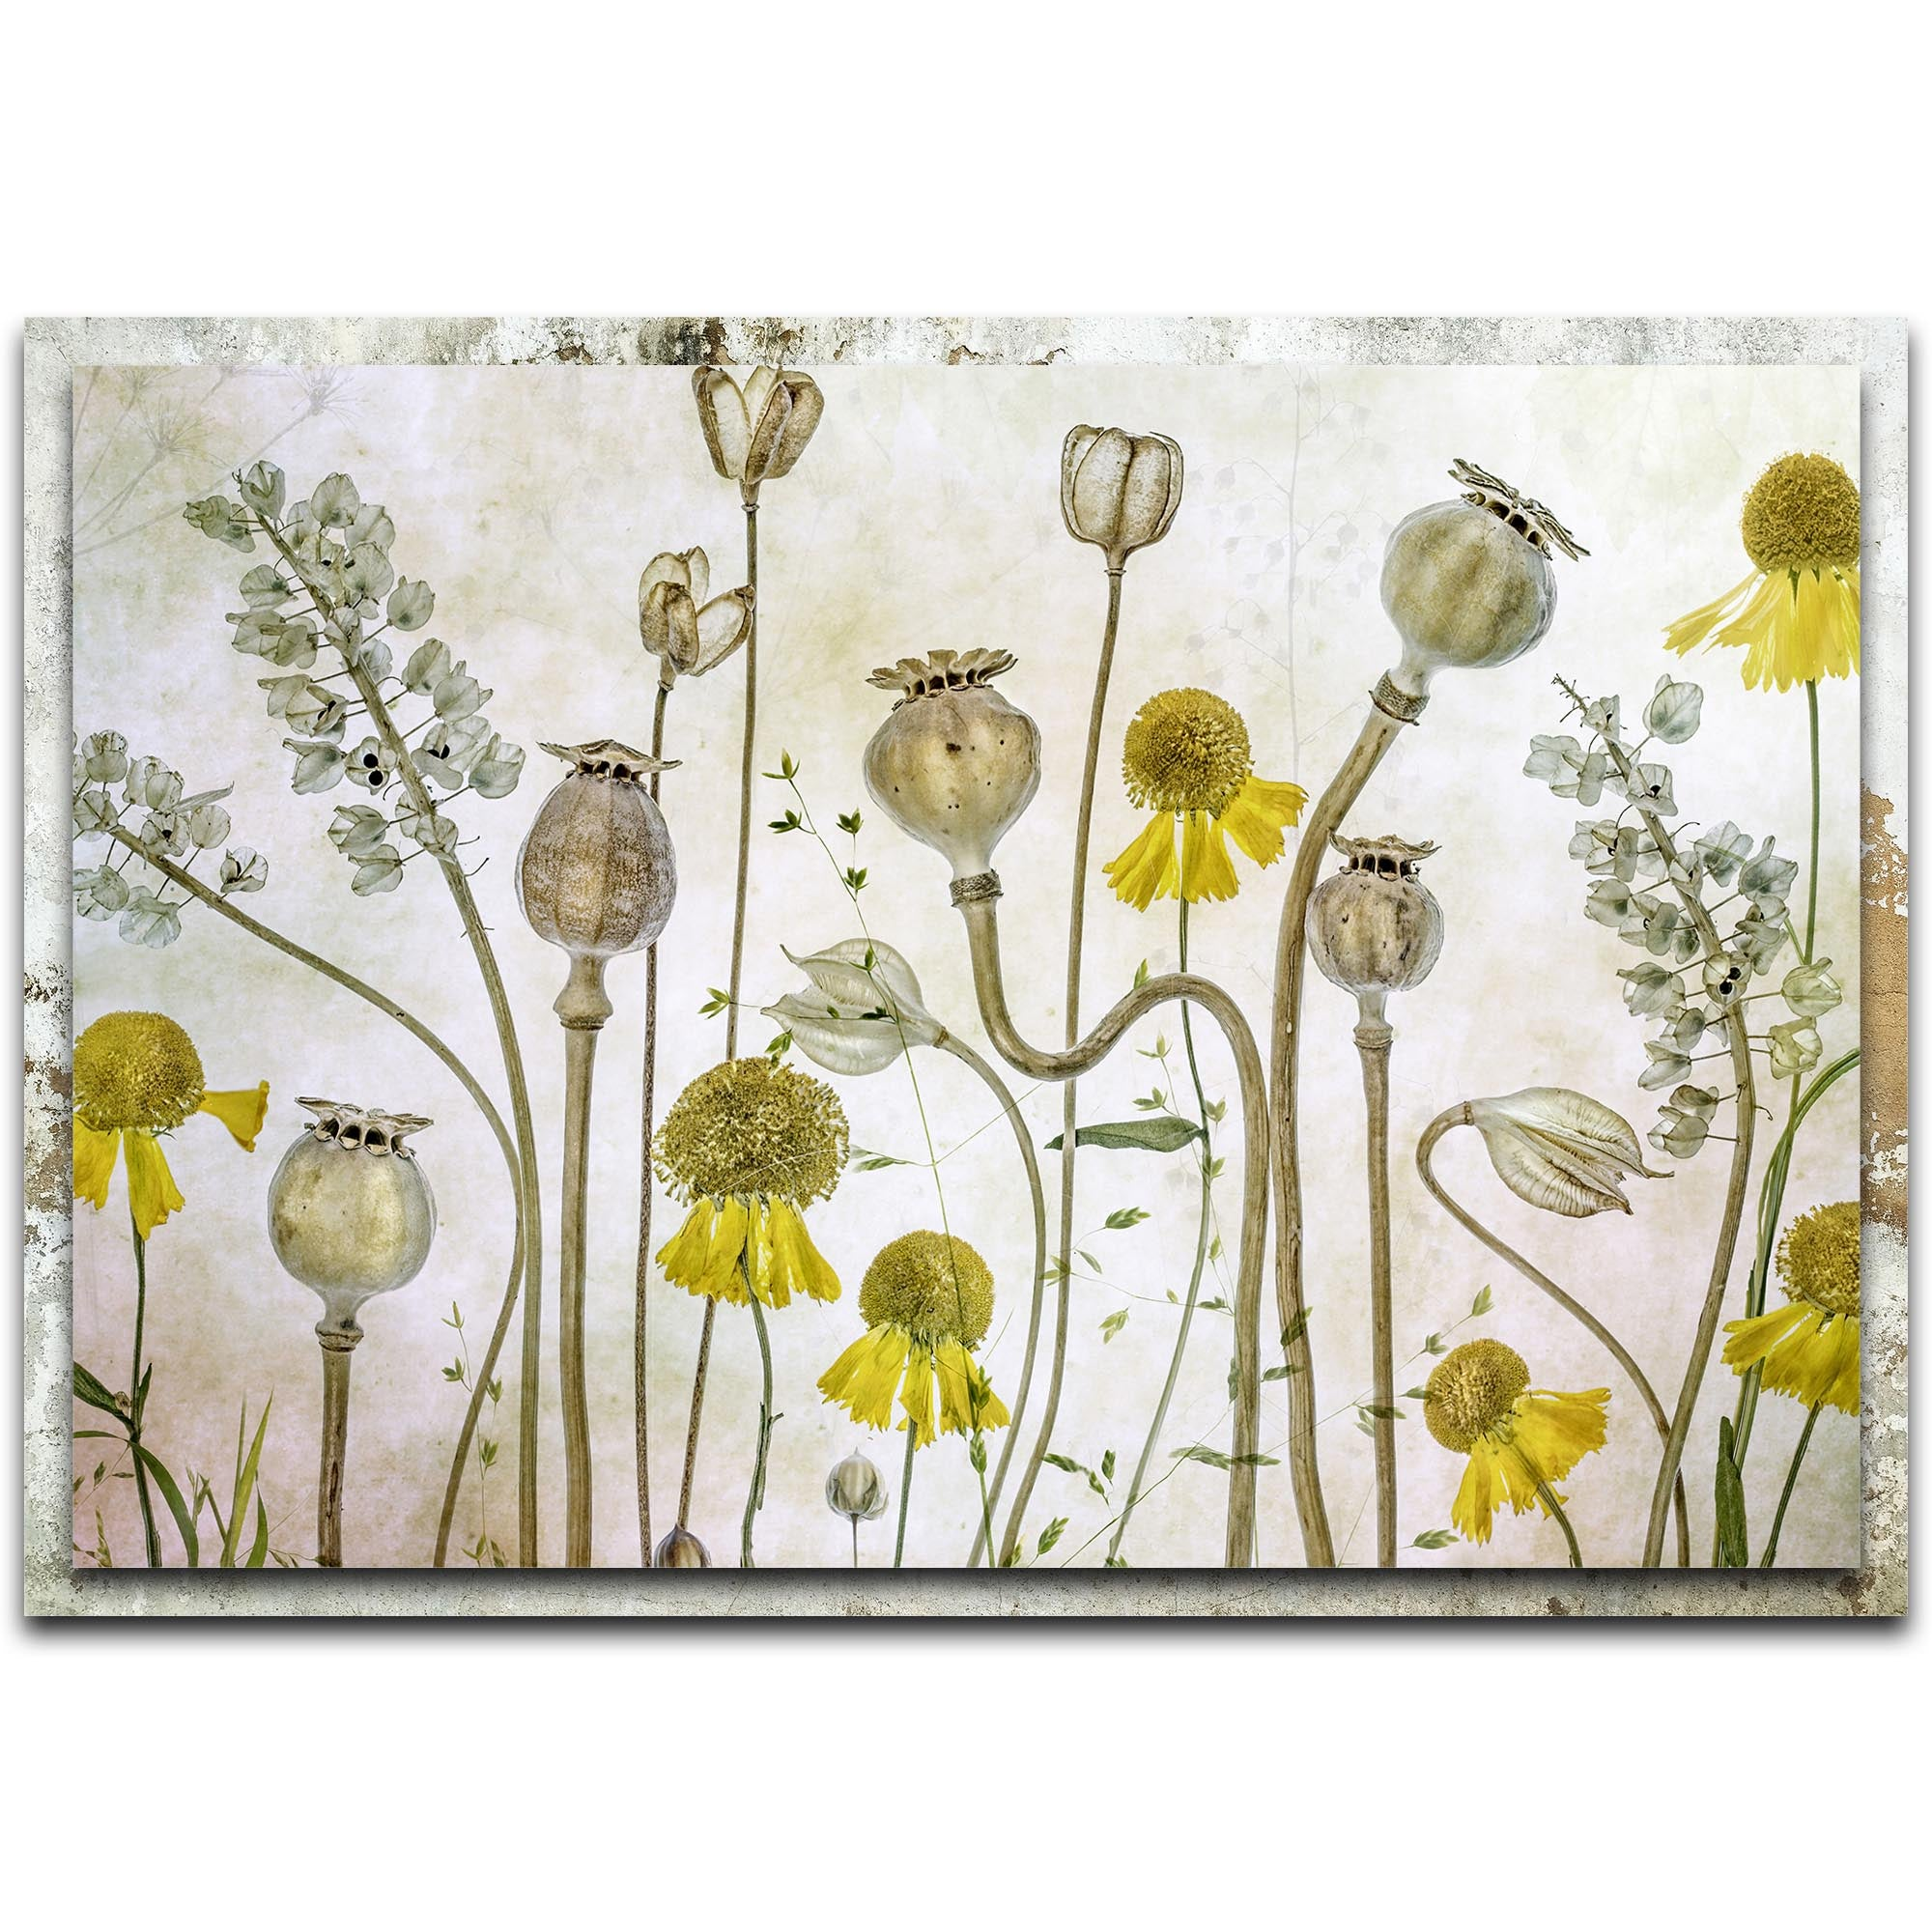 Poppies and Helenium by Mandy Disher - Modern Farmhouse Floral on Metal